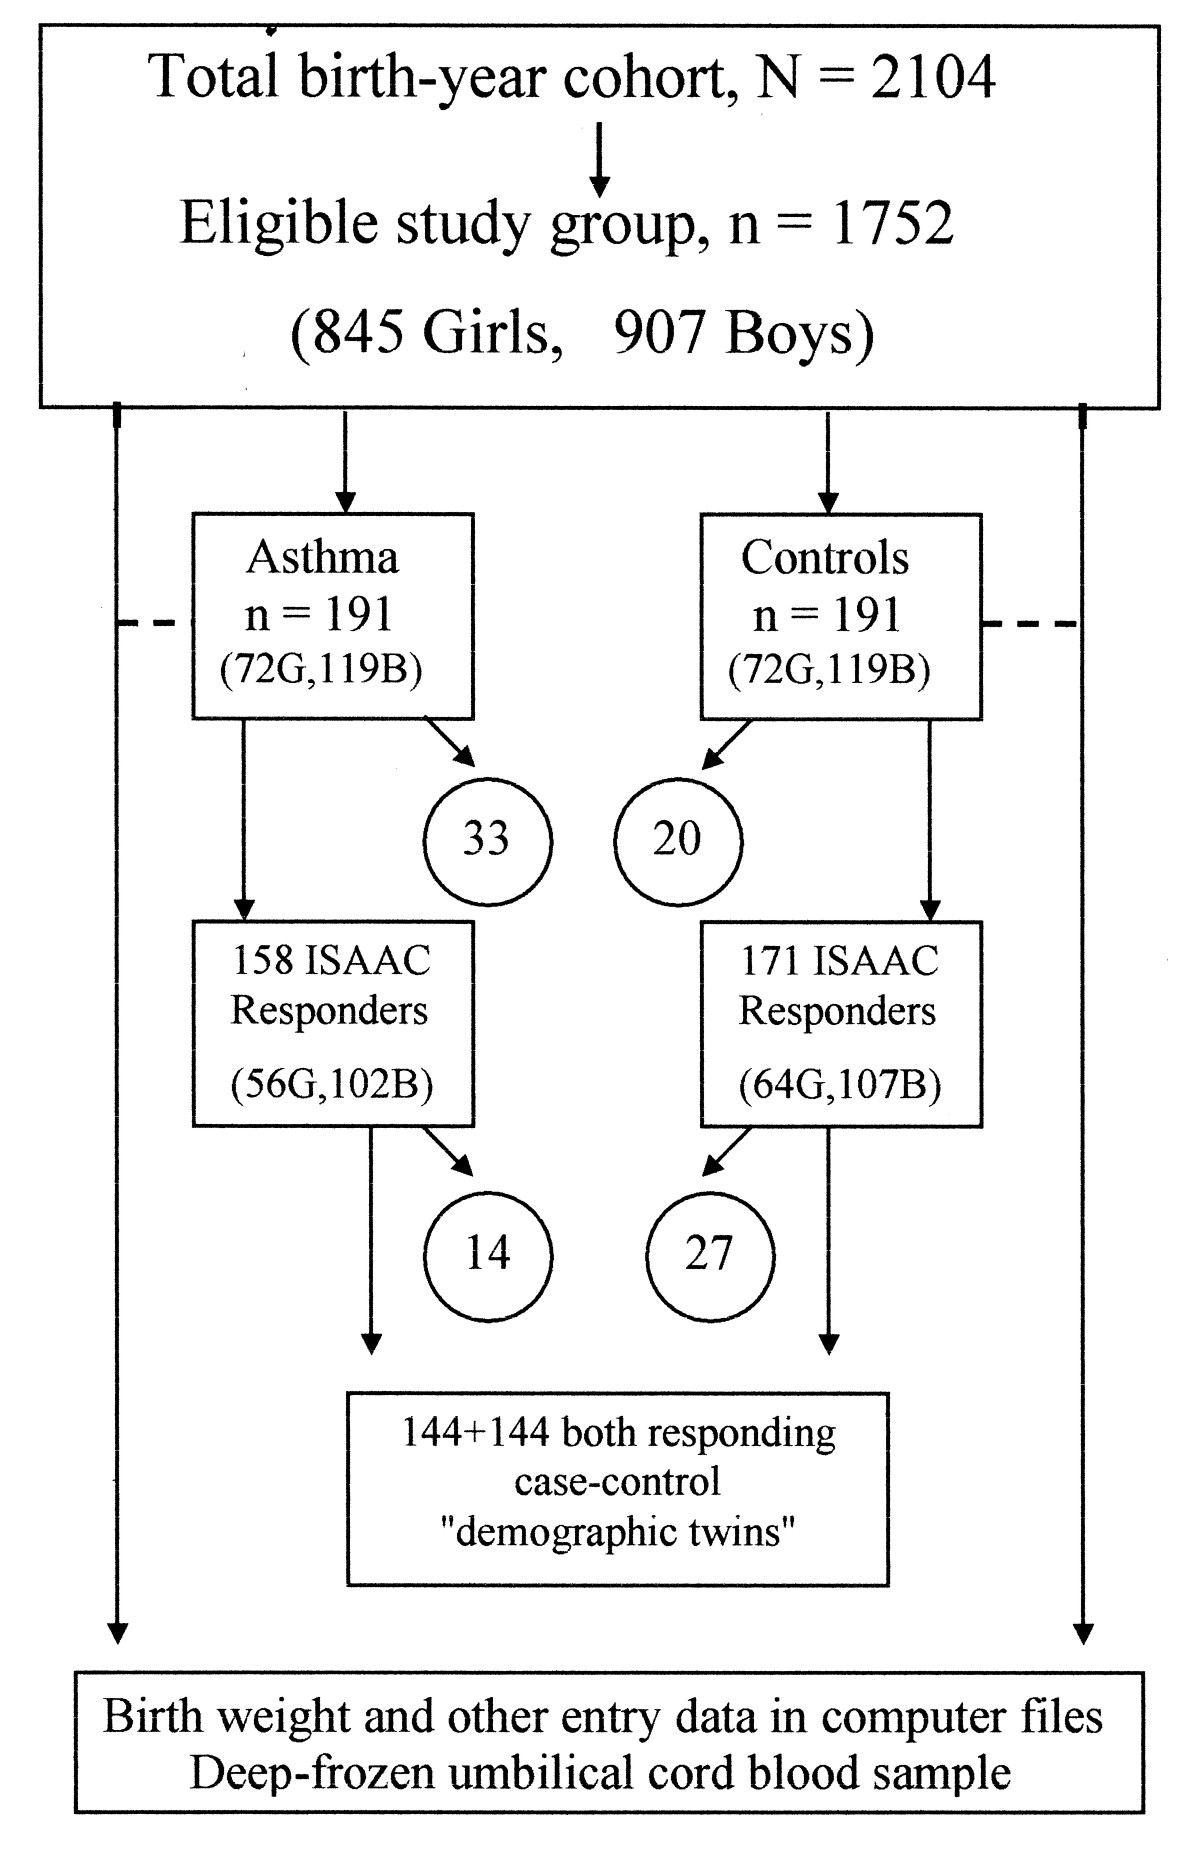 https://static-content.springer.com/image/art%3A10.1186%2F1471-2296-6-16/MediaObjects/12875_2004_Article_95_Fig1_HTML.jpg